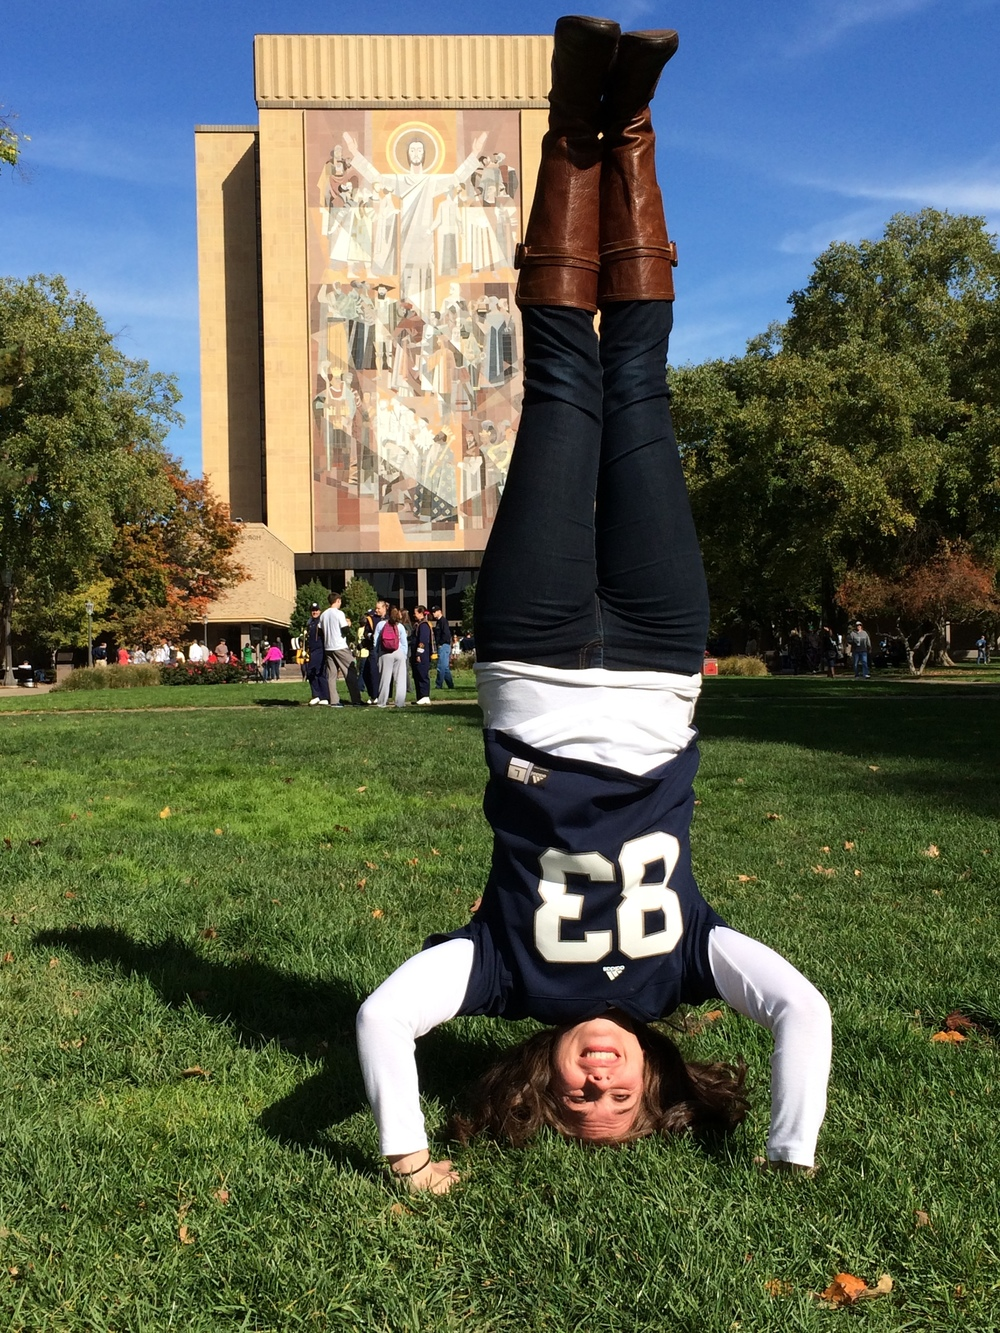 god.  country.  notre dame.  and headstands.